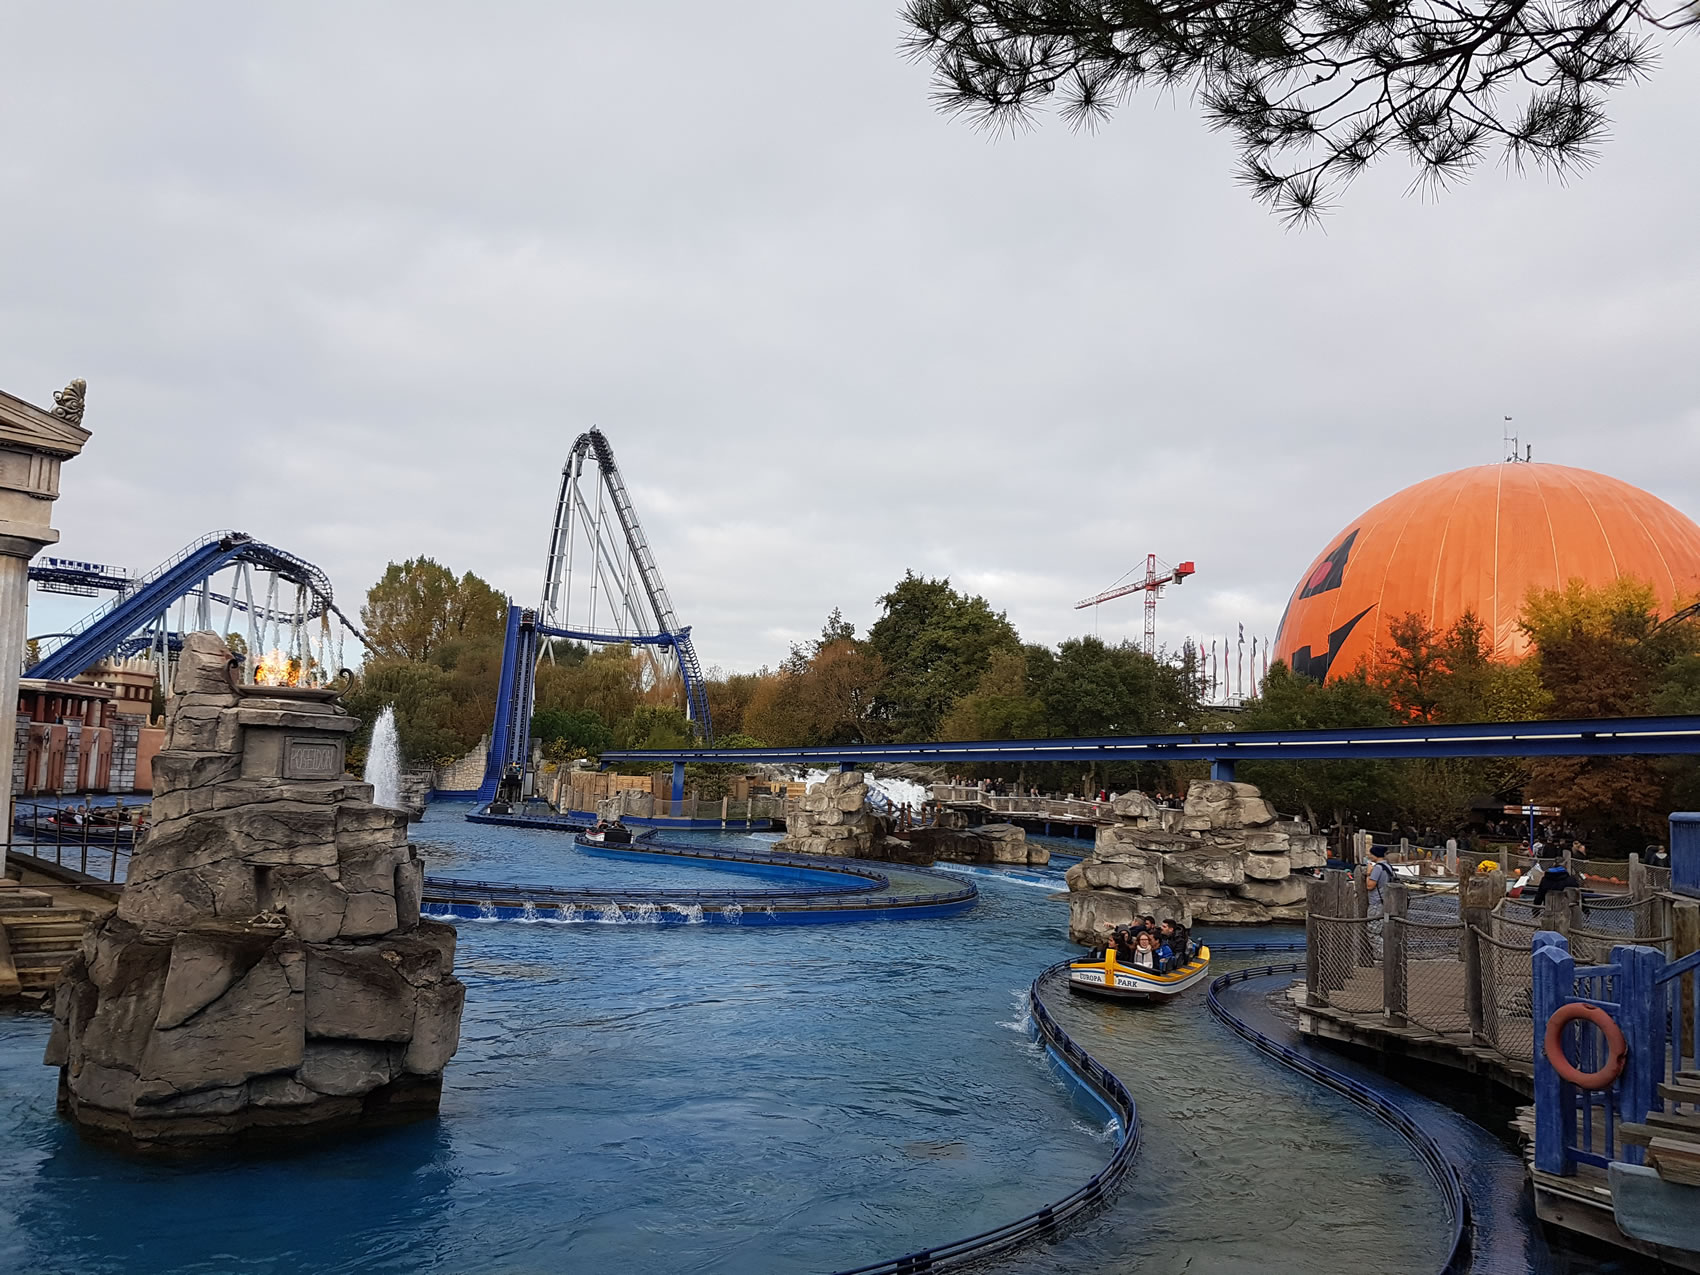 Europa-Park: The adventure, the excitement and the pumpkins - Image Credit BreakingStereotypes.org